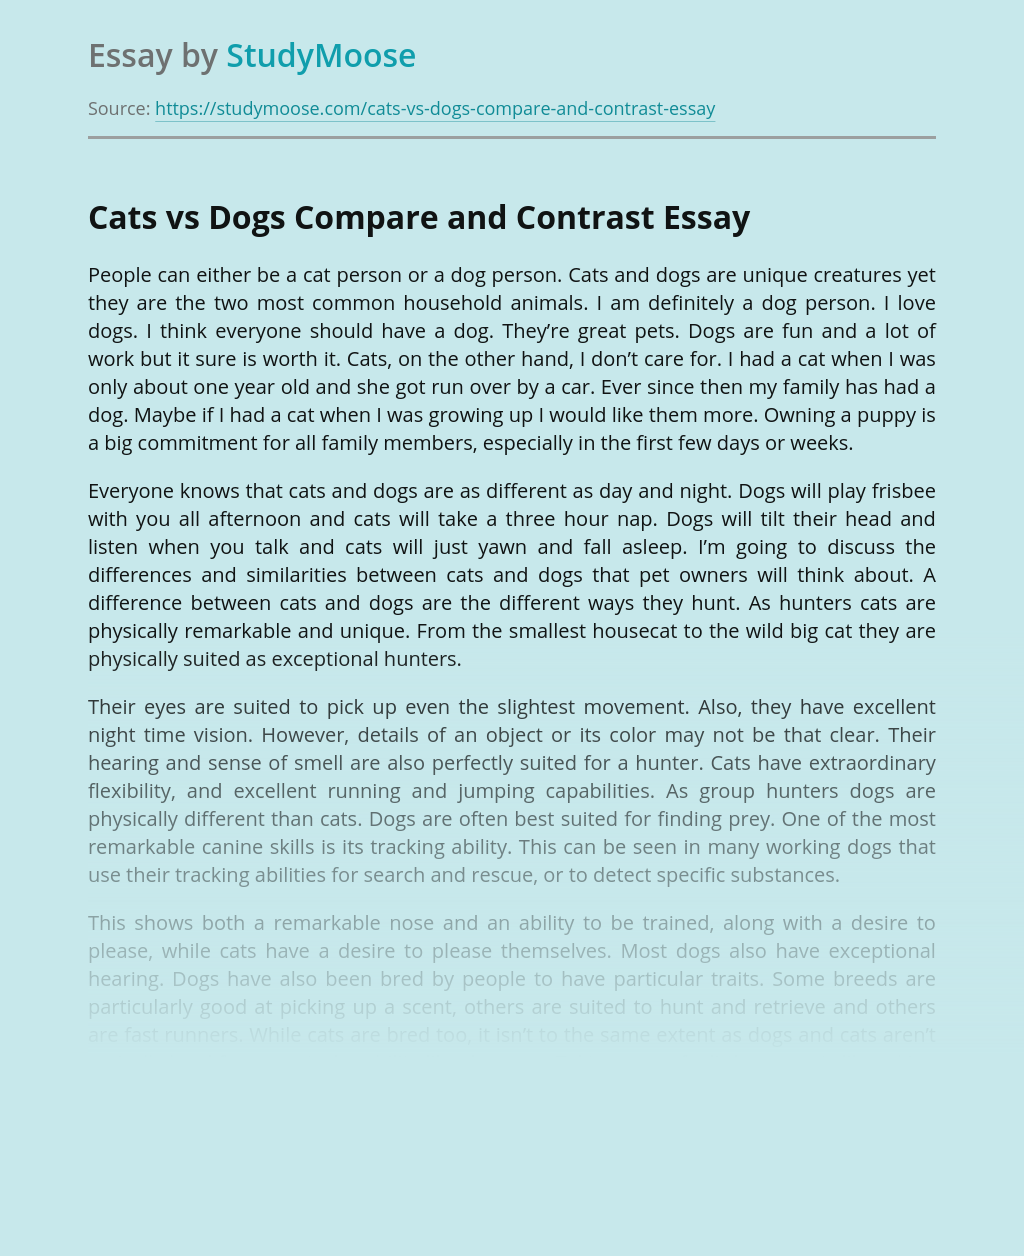 Cats vs Dogs Compare and Contrast